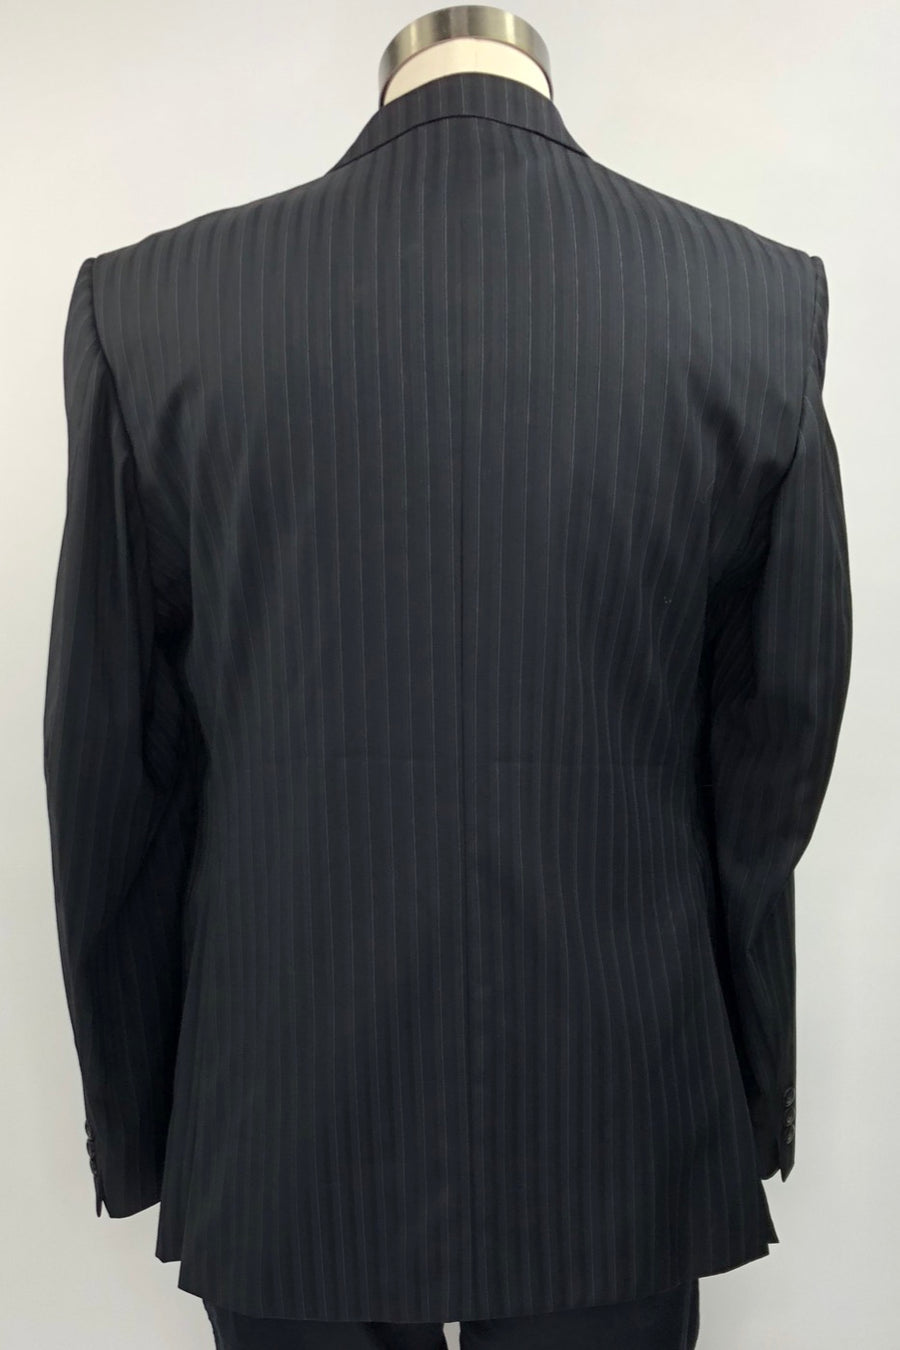 Grand Prix Hunt Coat in Black Pinstripe - Back View